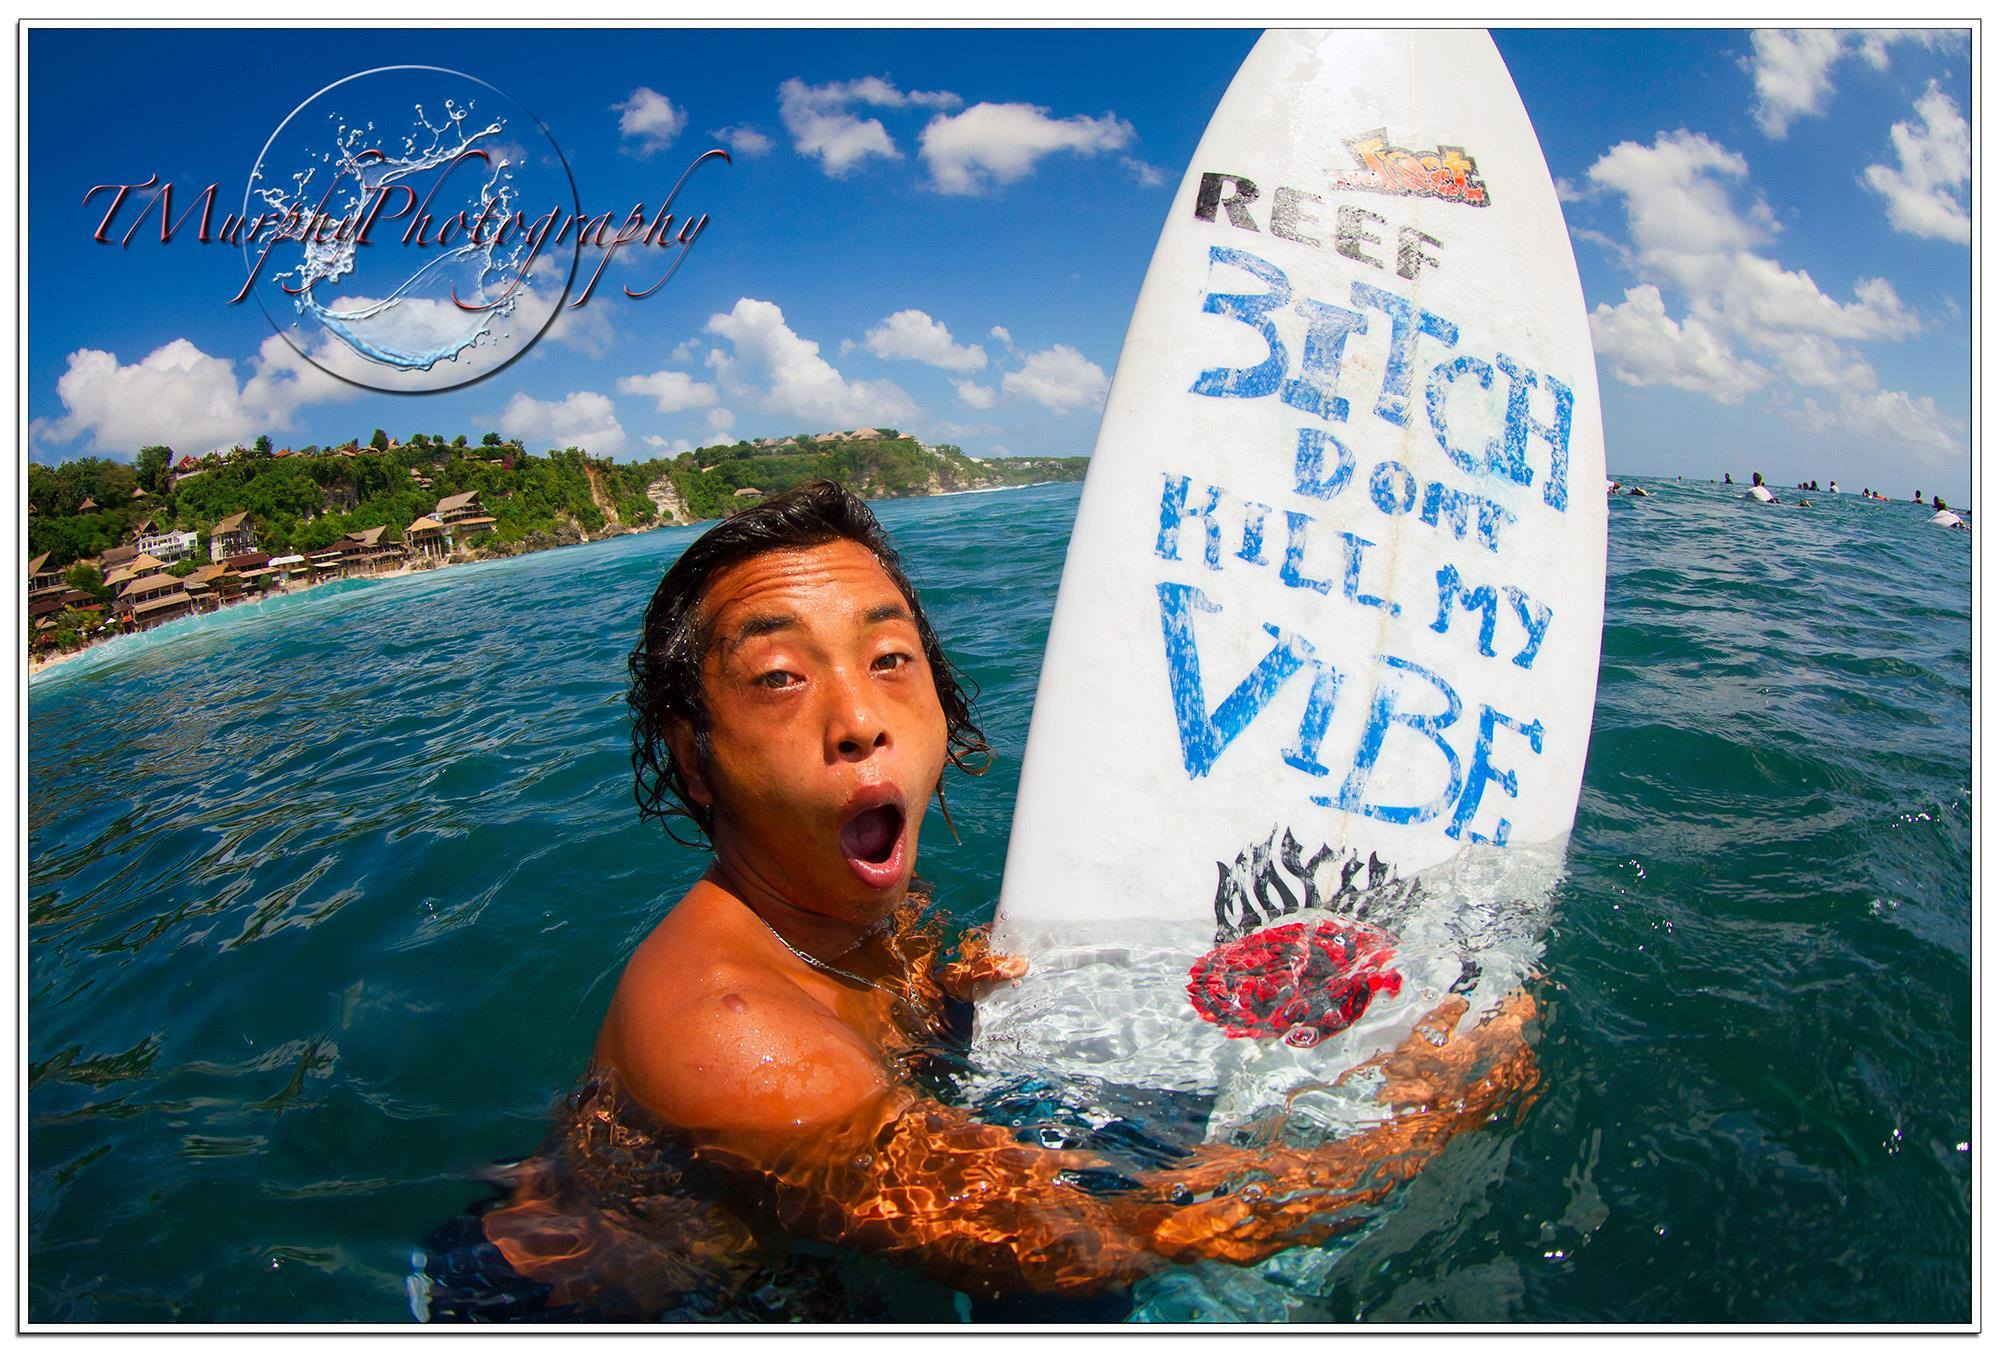 Bitch dont kill my vibe - Surfboard artwork.